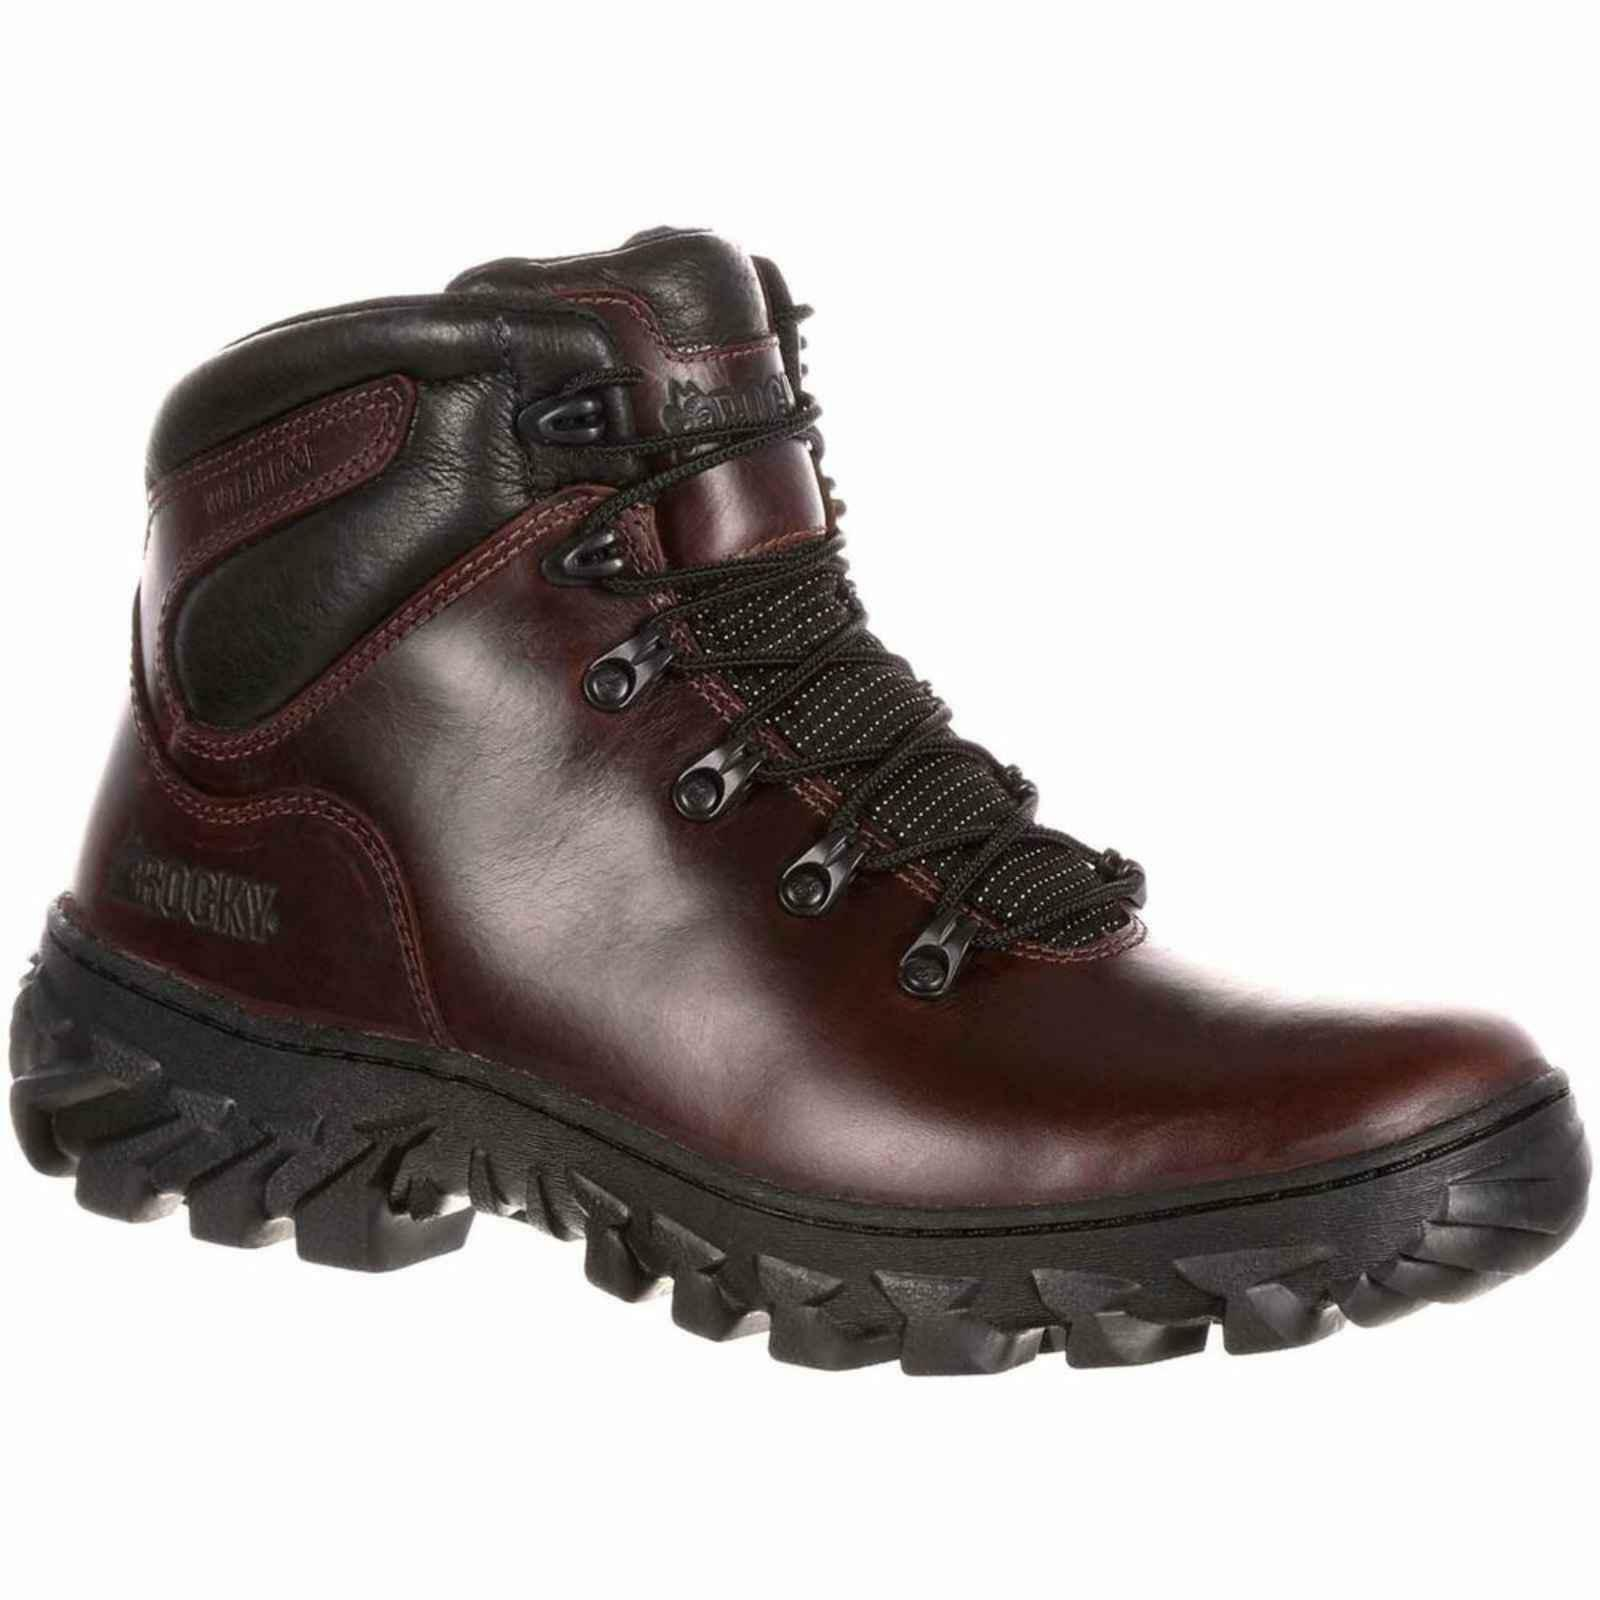 Rocky S2V Jungle Hunter Waterproof Insulated Outdoor Boot RKS0272